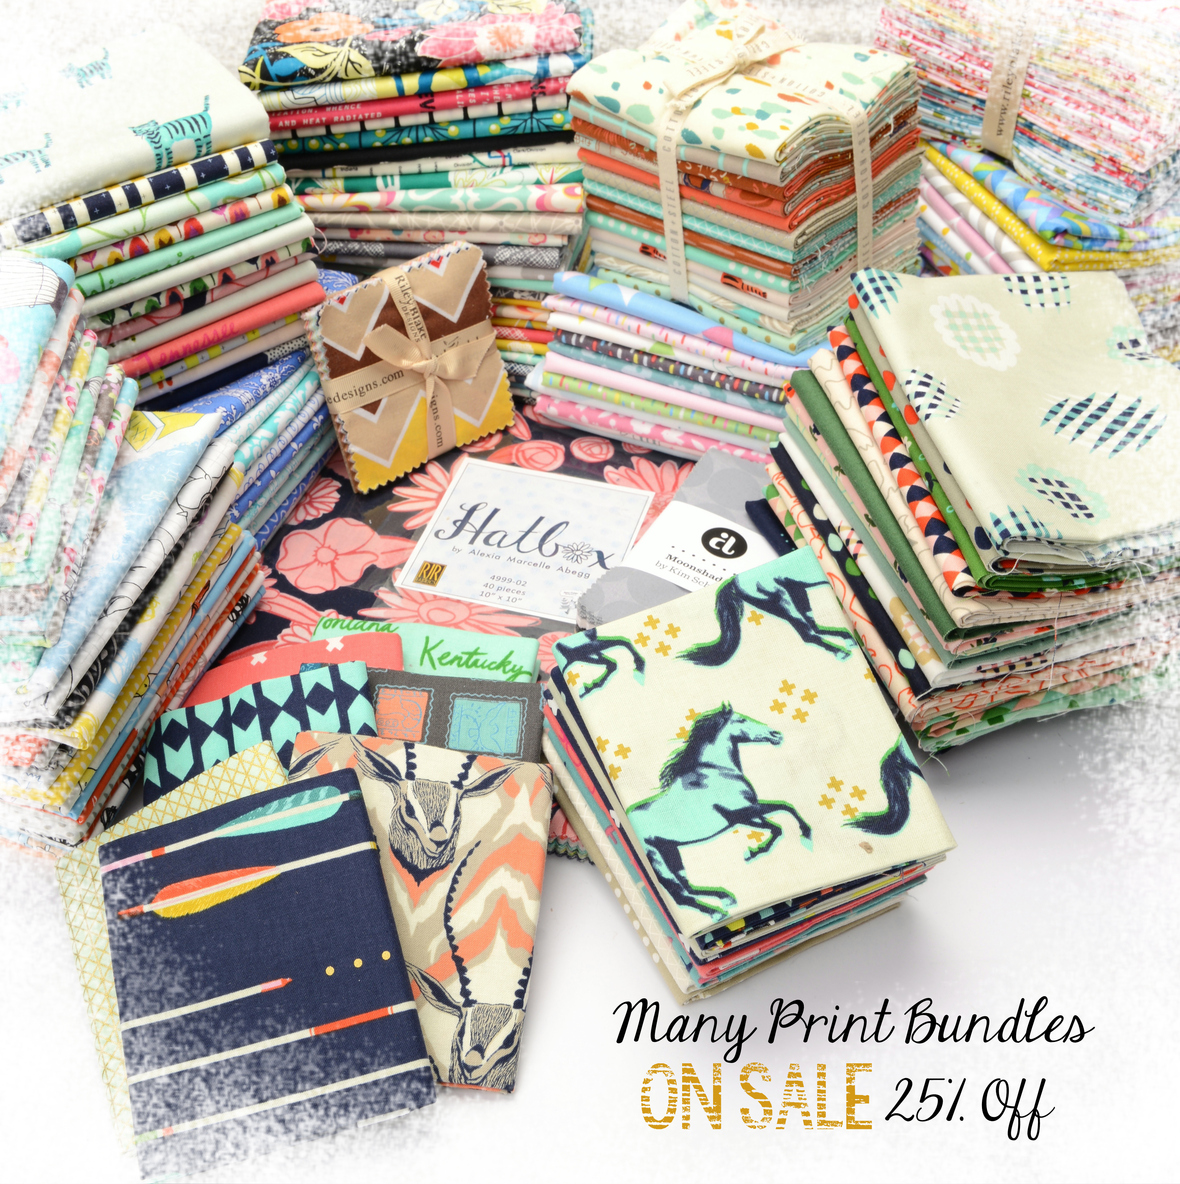 Precut Assortment on Sale with frosty border